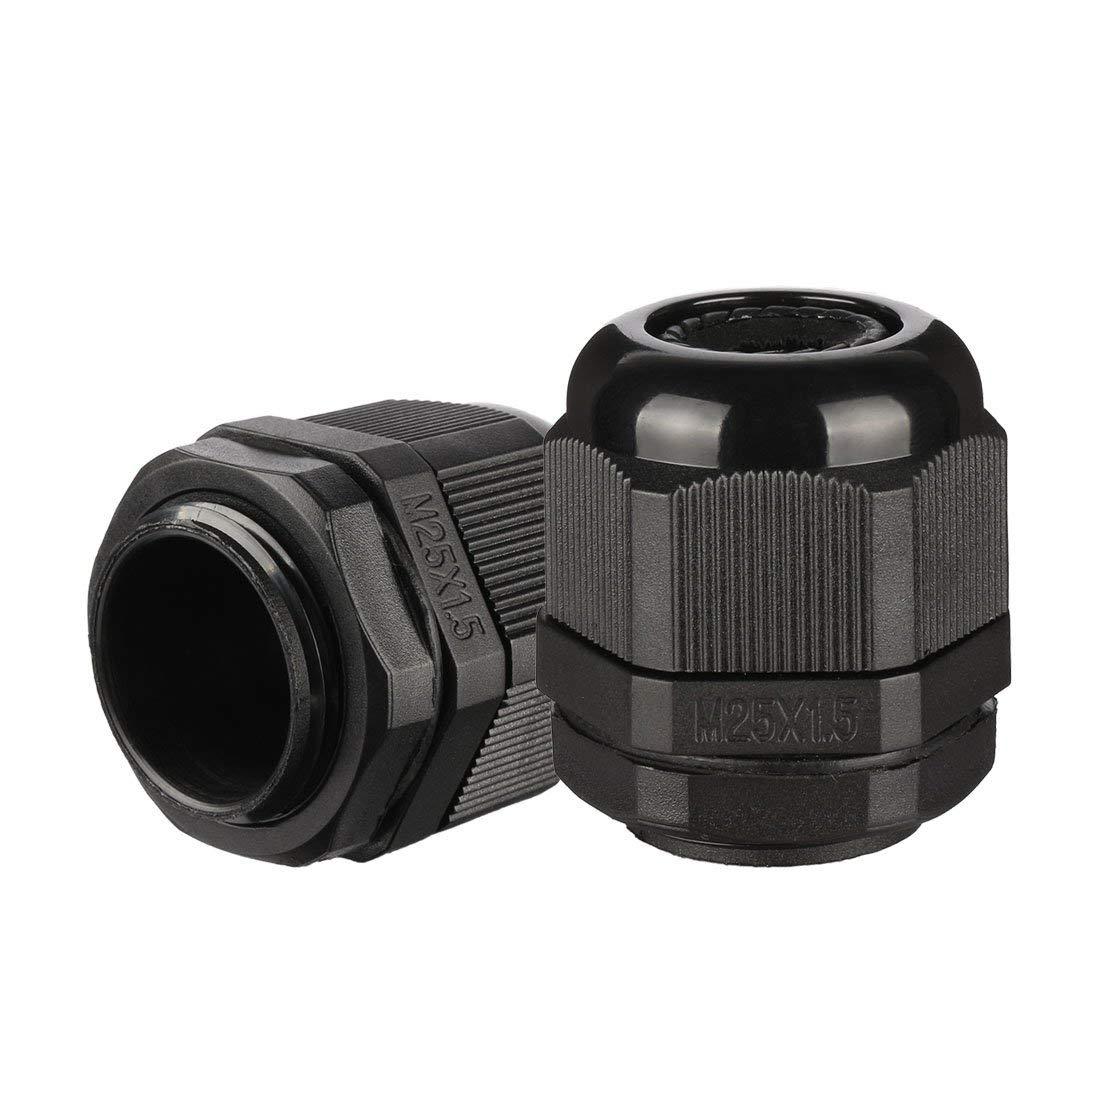 20 pieces M25 Waterproof IP68 Nylon Cable Gland Gasket Adjustable safety nut for cable cable diameter from 13mm to 18mm